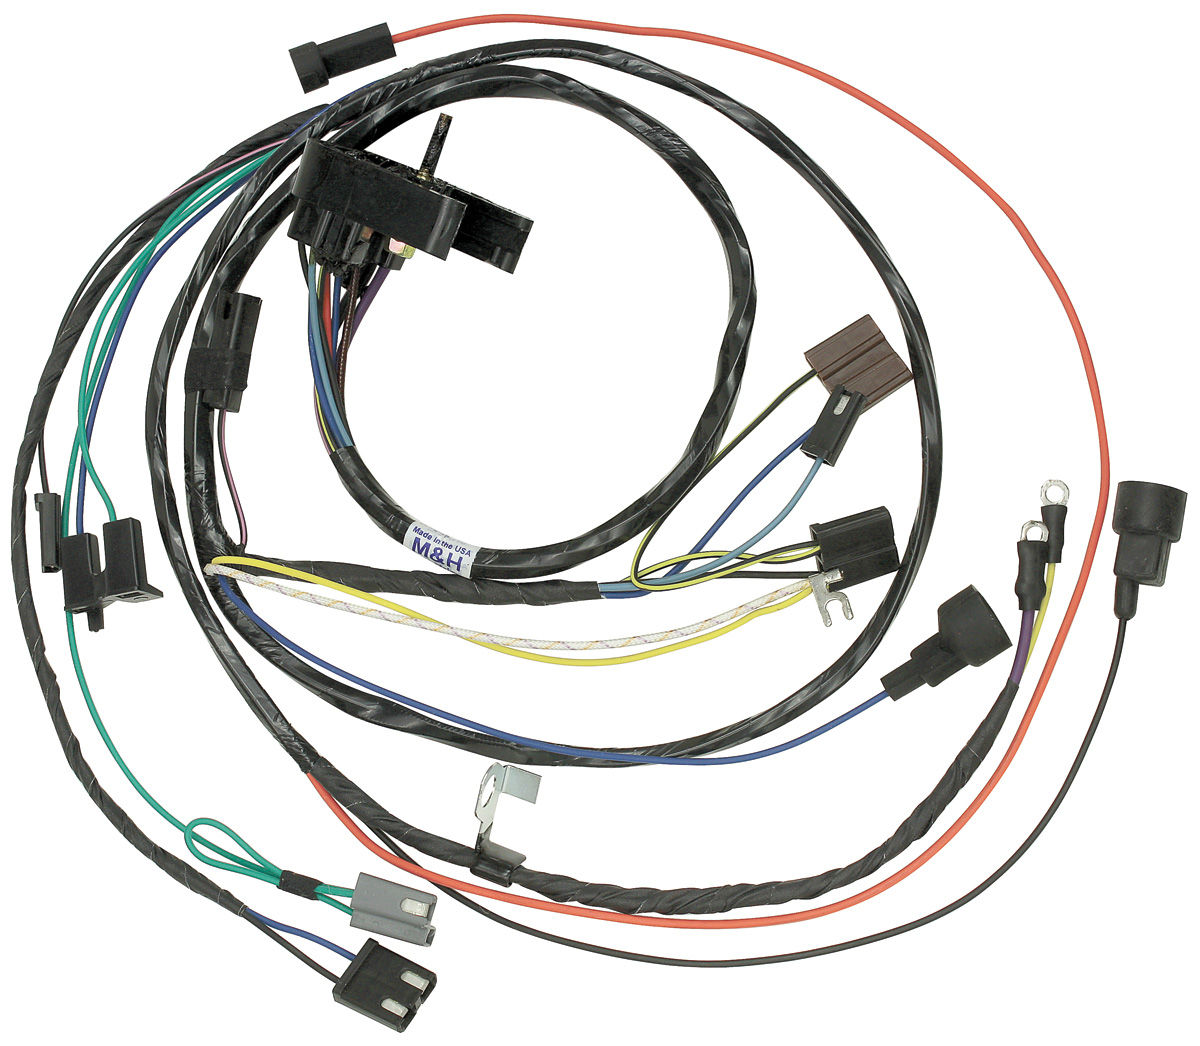 Monte Carlo Wiring Harness Wiring Diagrams Element Element Miglioribanche It